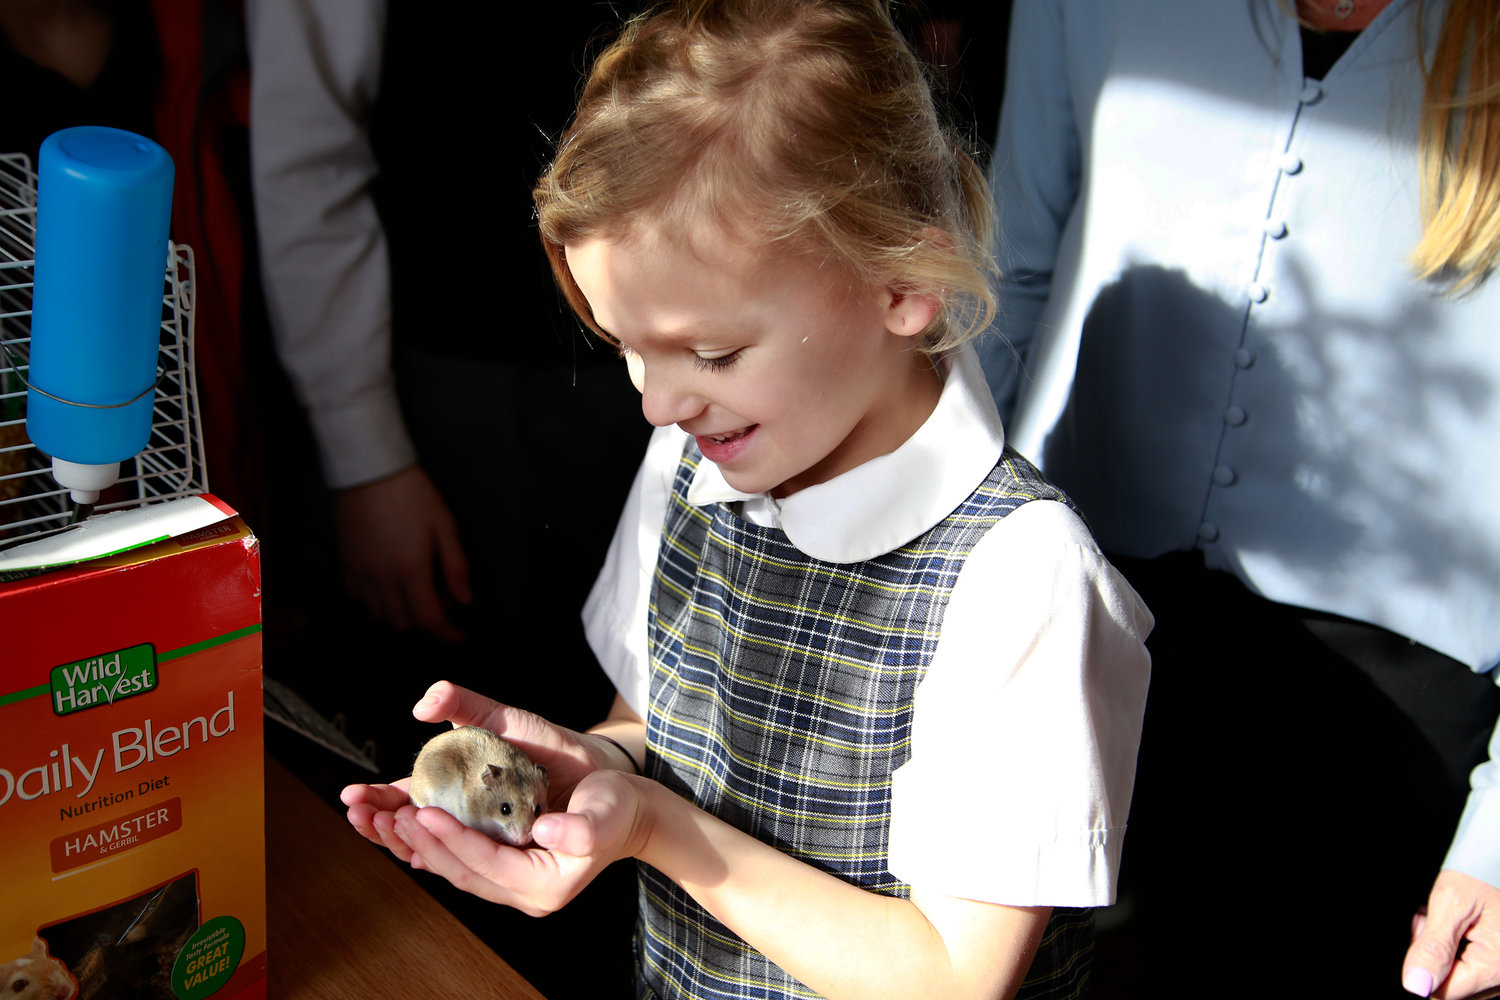 Six-year old Clara Lang got to hold Nugget, a dwarf hamster.